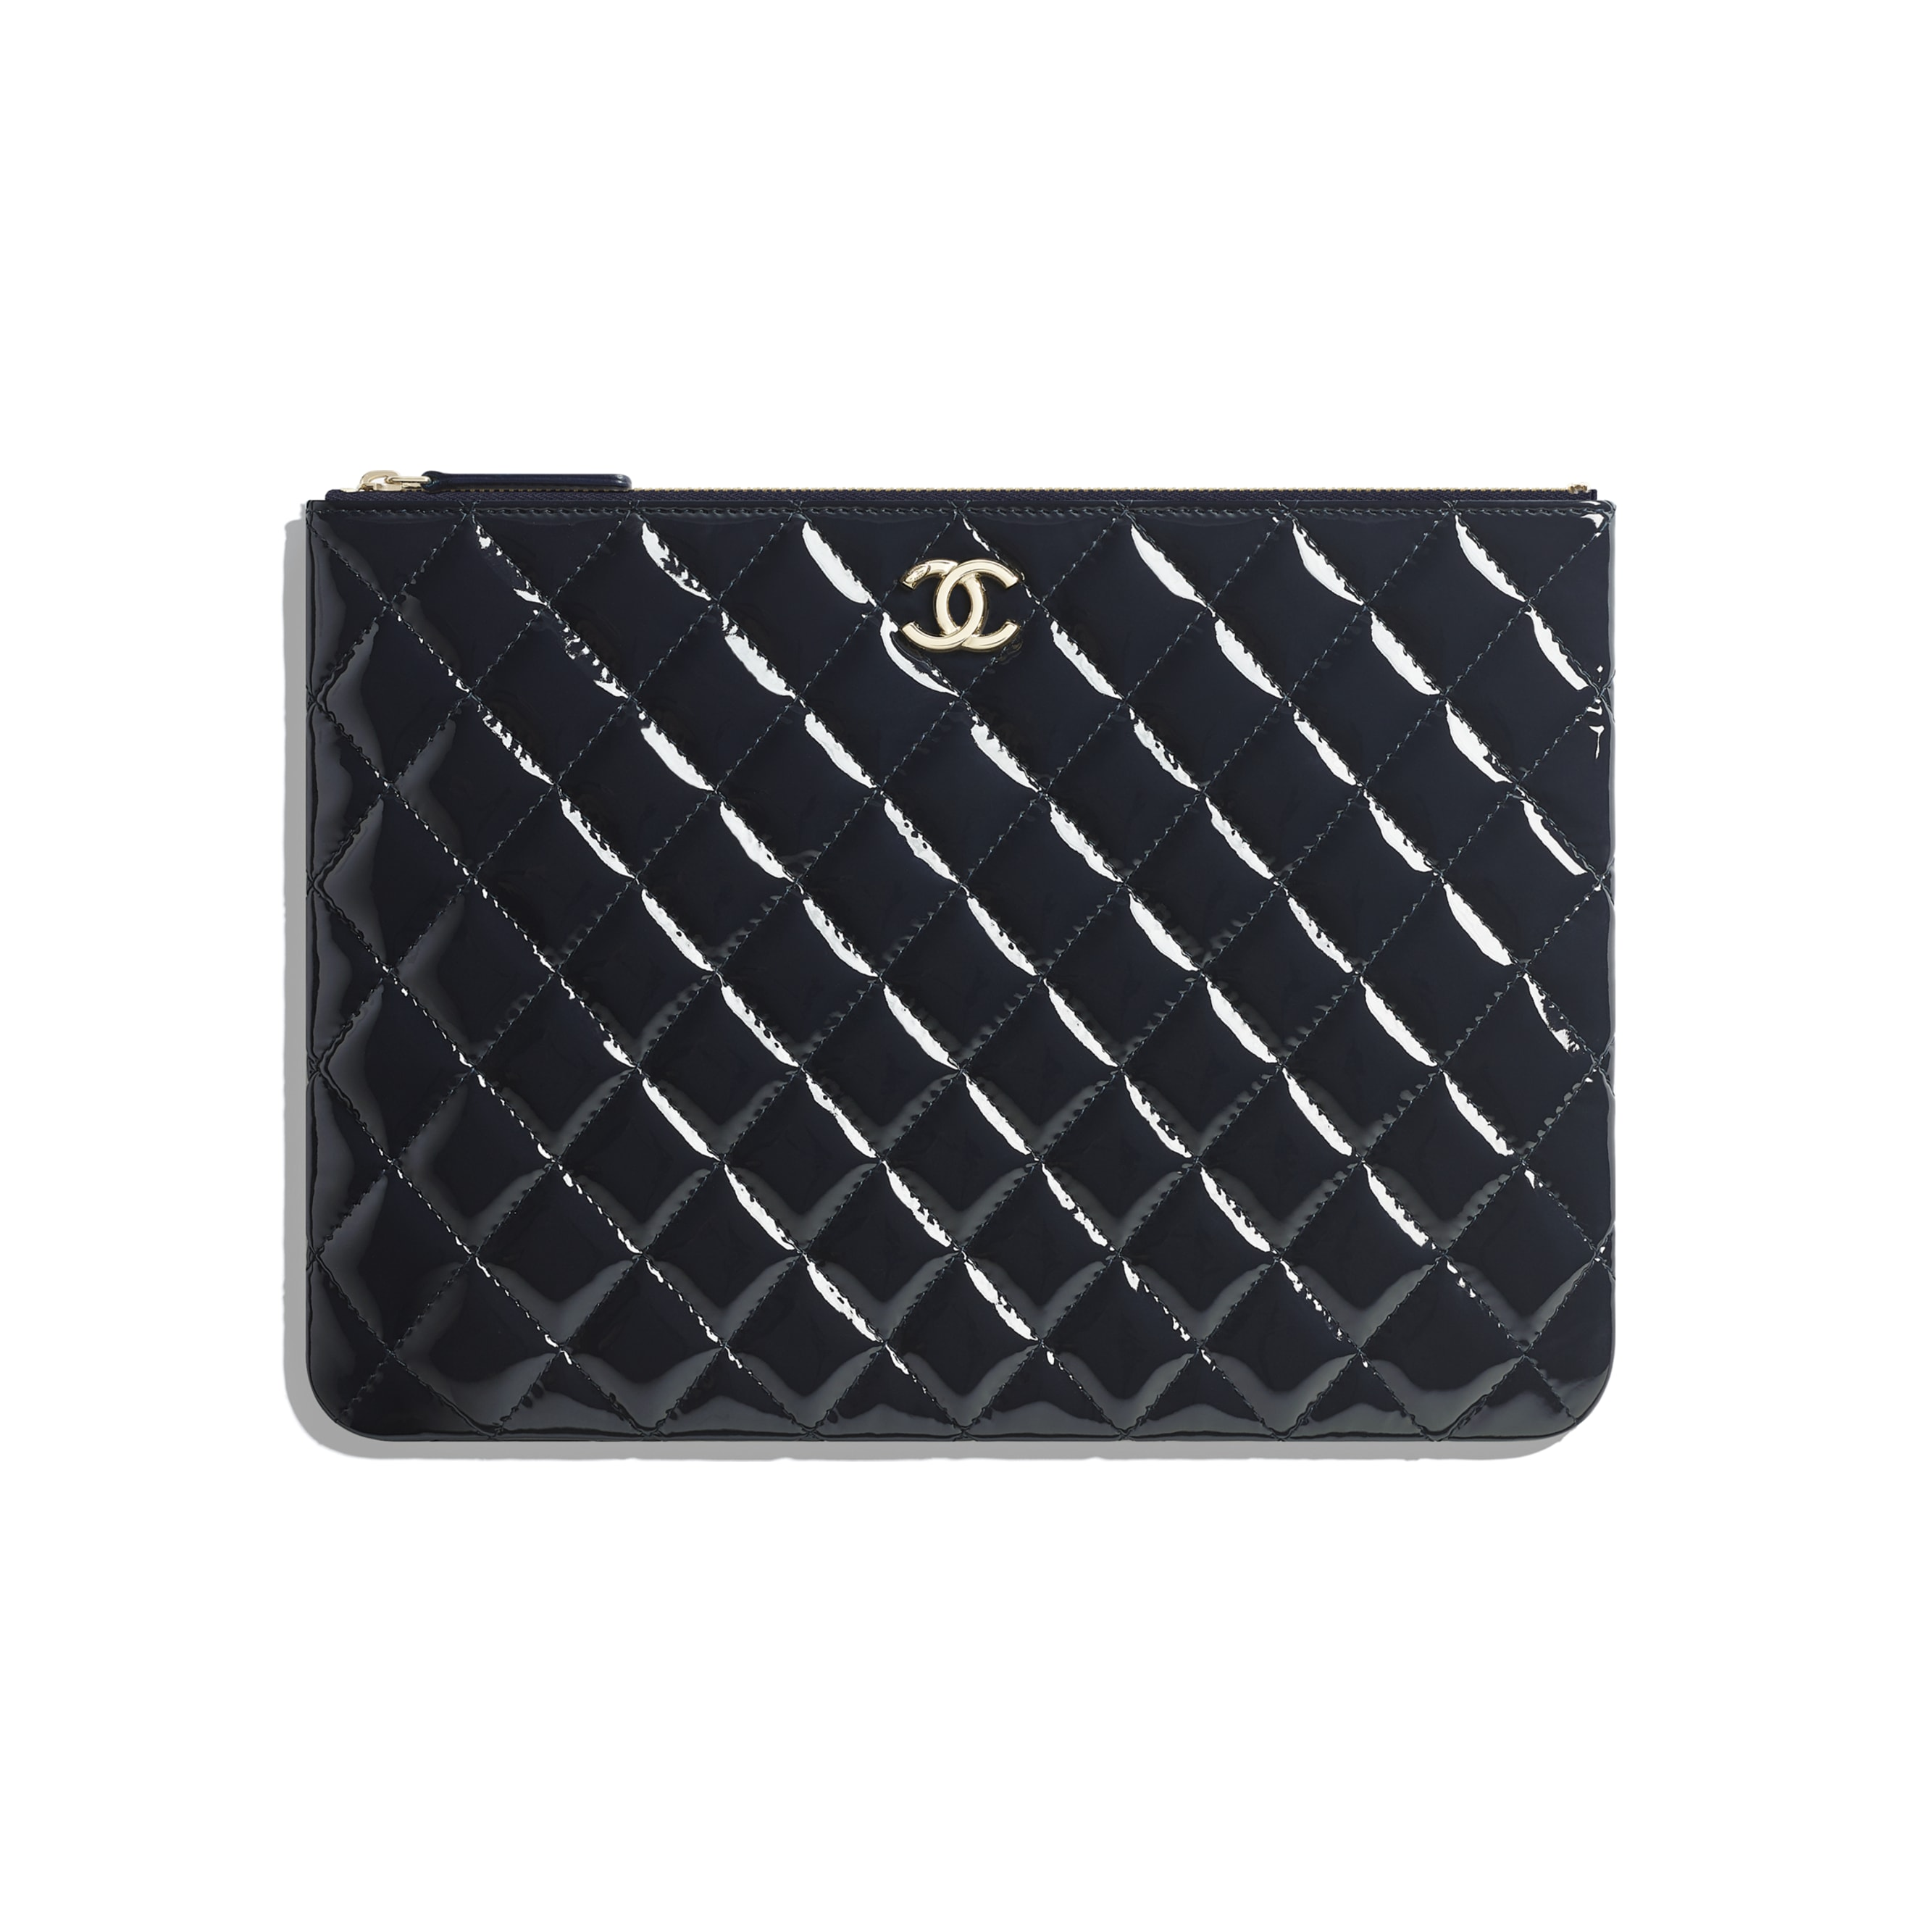 Pouch - Navy Blue - Patent Calfskin, Lambskin & Gold-Tone Metal - CHANEL - Default view - see standard sized version